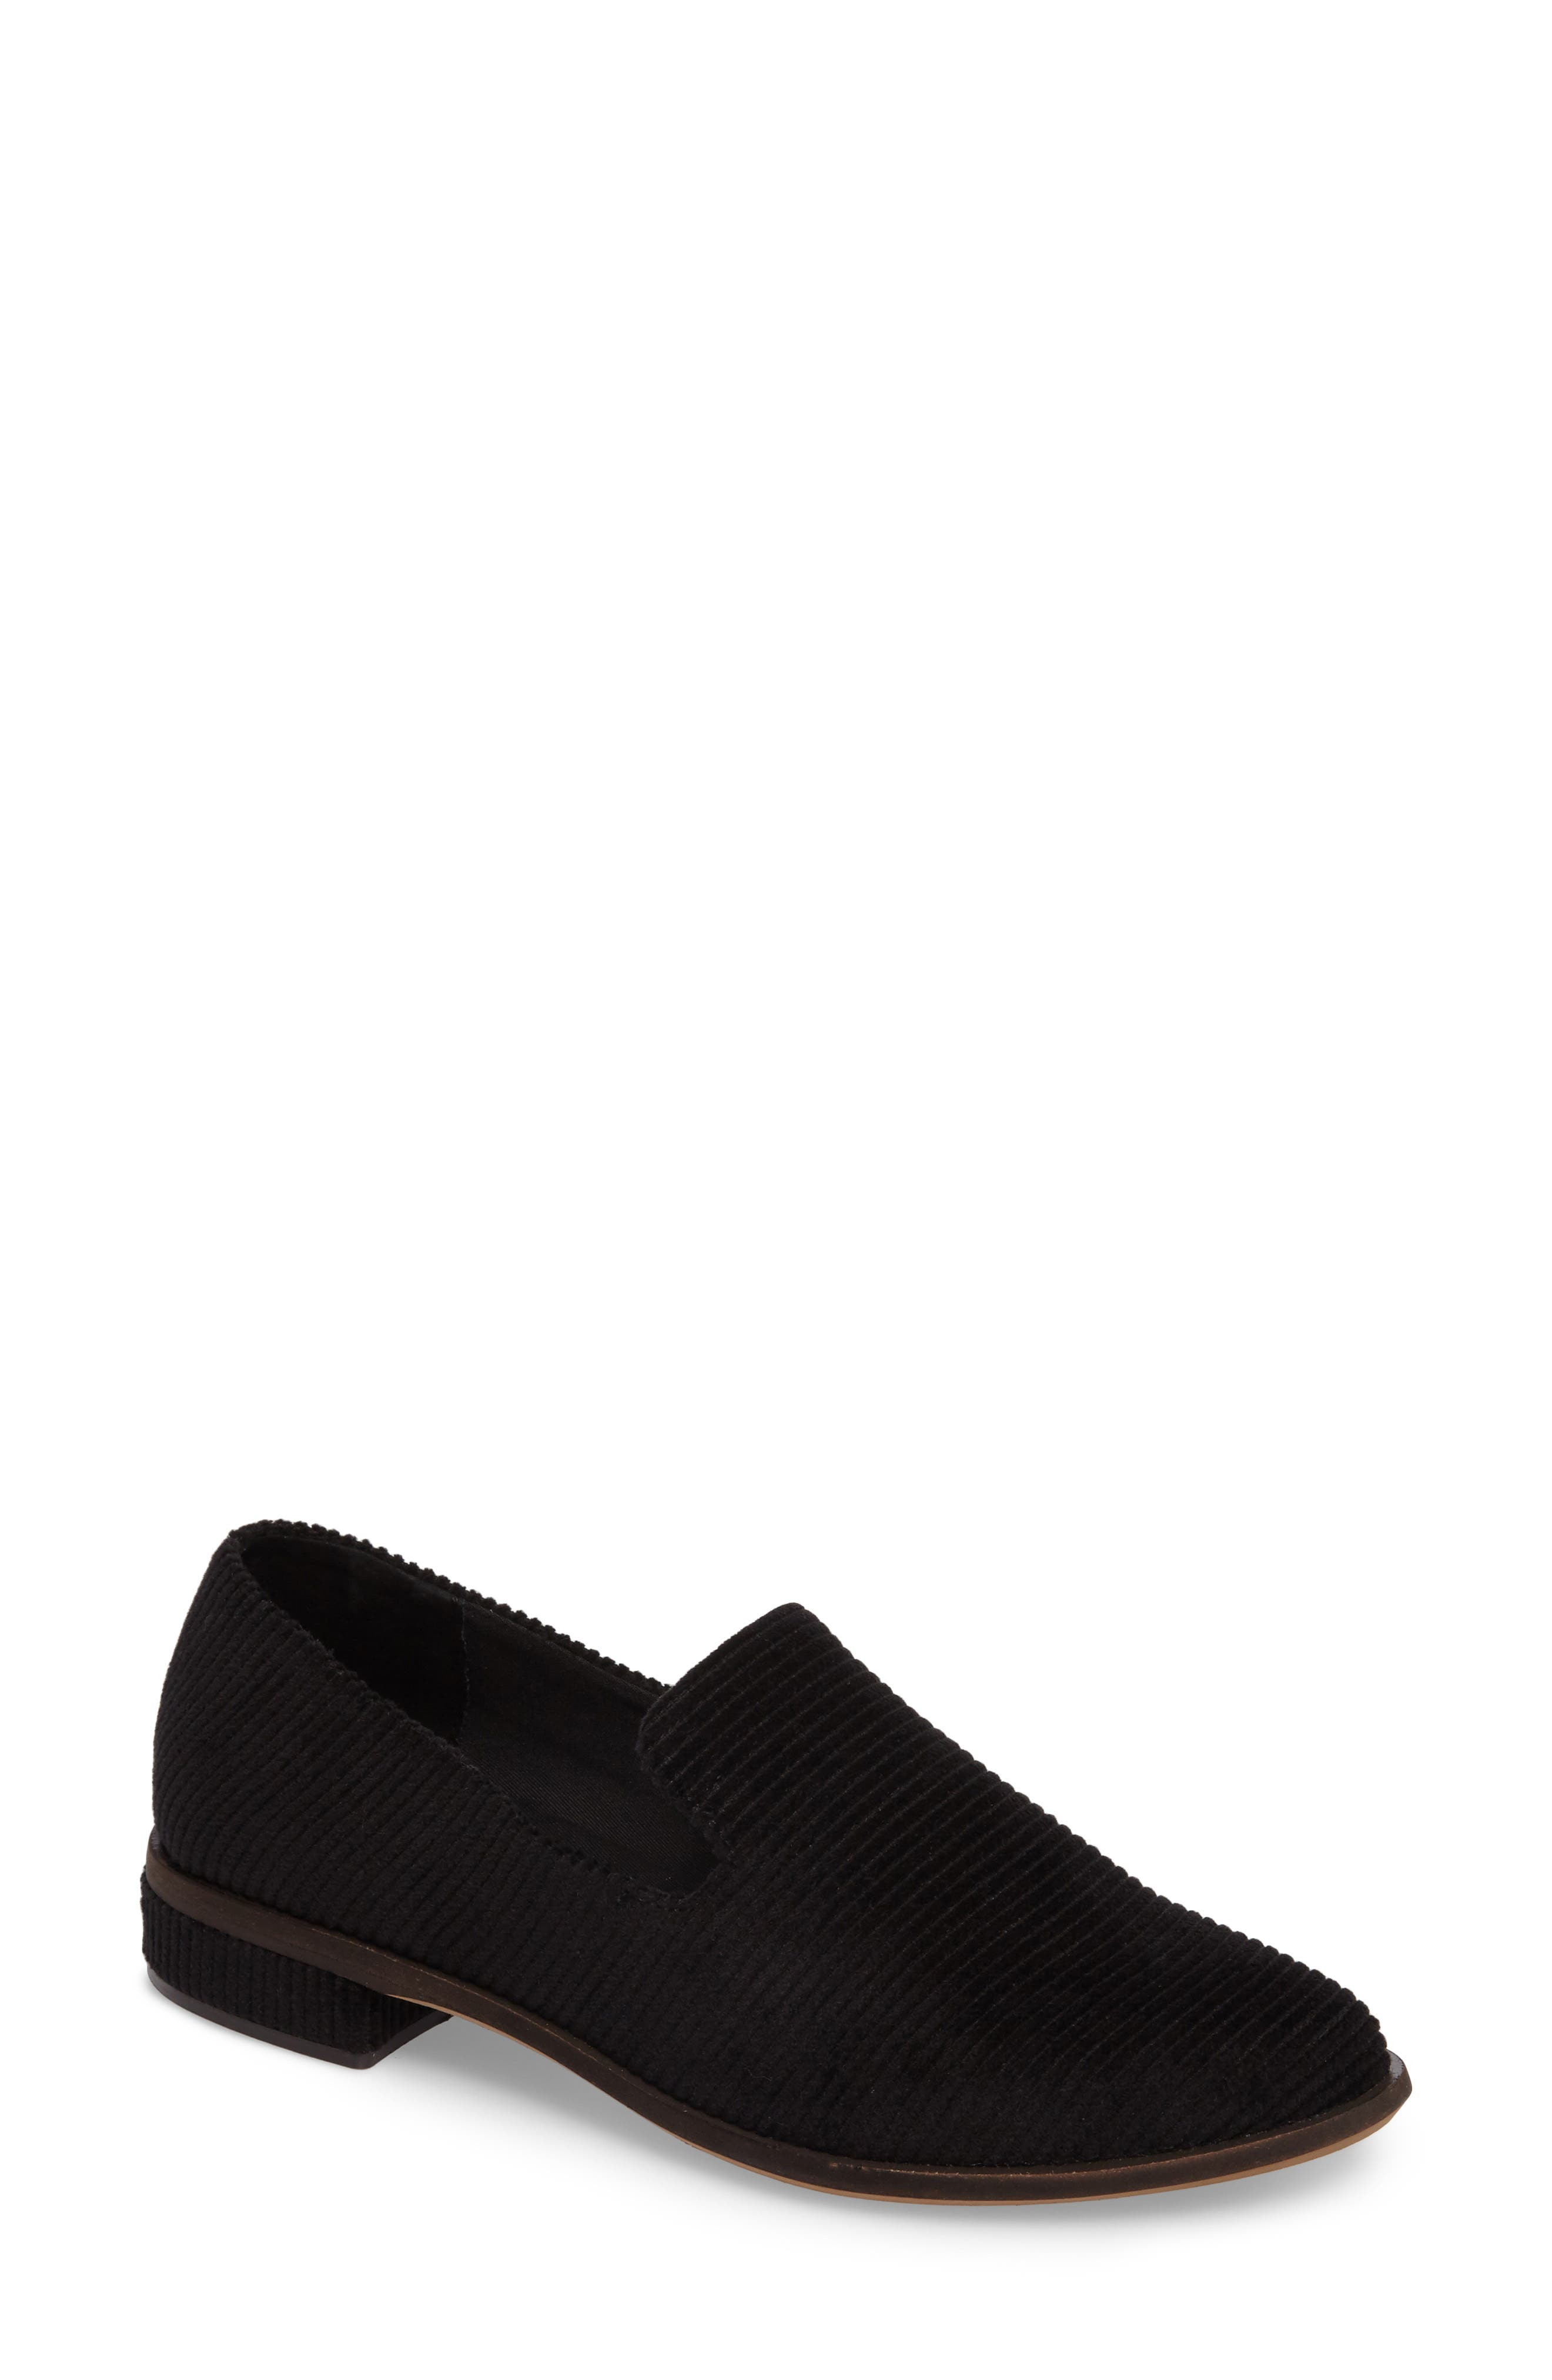 Kelsi Dagger Brooklyn Arbor Corduroy Loafer (Women)